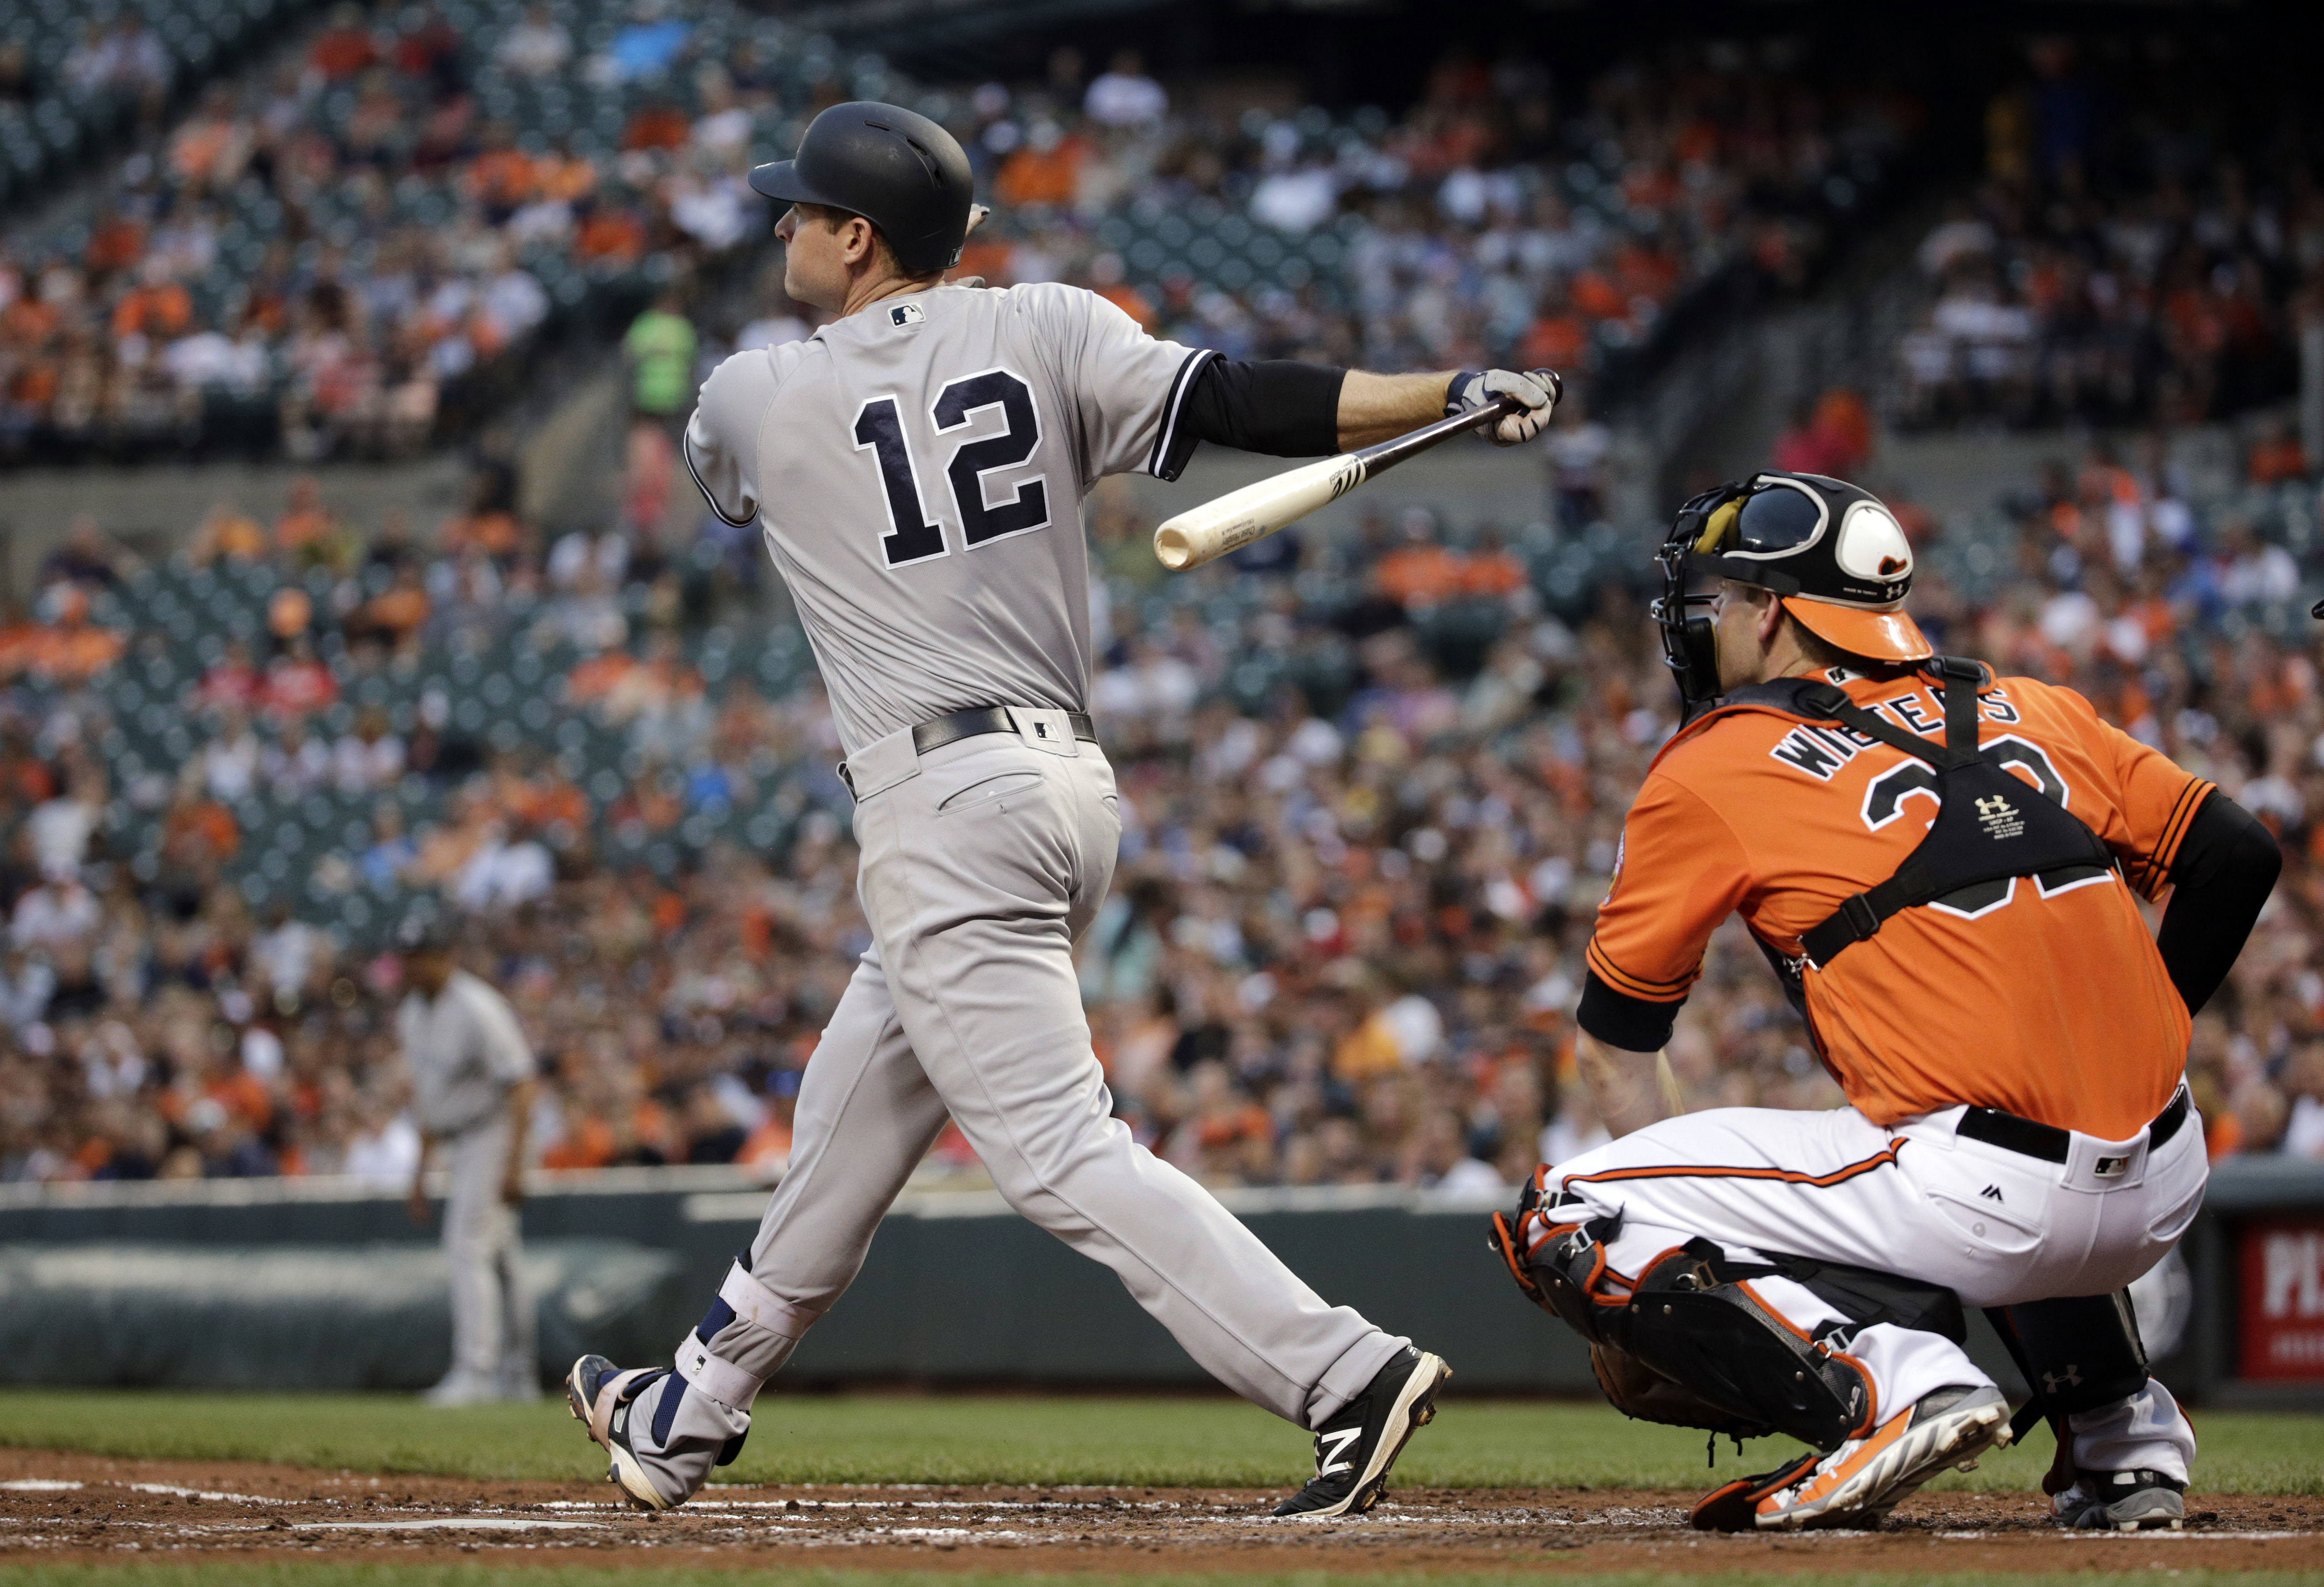 New York Yankees' Chase Headley, left, doubles in front of Baltimore Orioles catcher Matt Wieters in the third inning of a baseball game in Baltimore, Saturday, June 4, 2016. (AP Photo/Patrick Semansky)